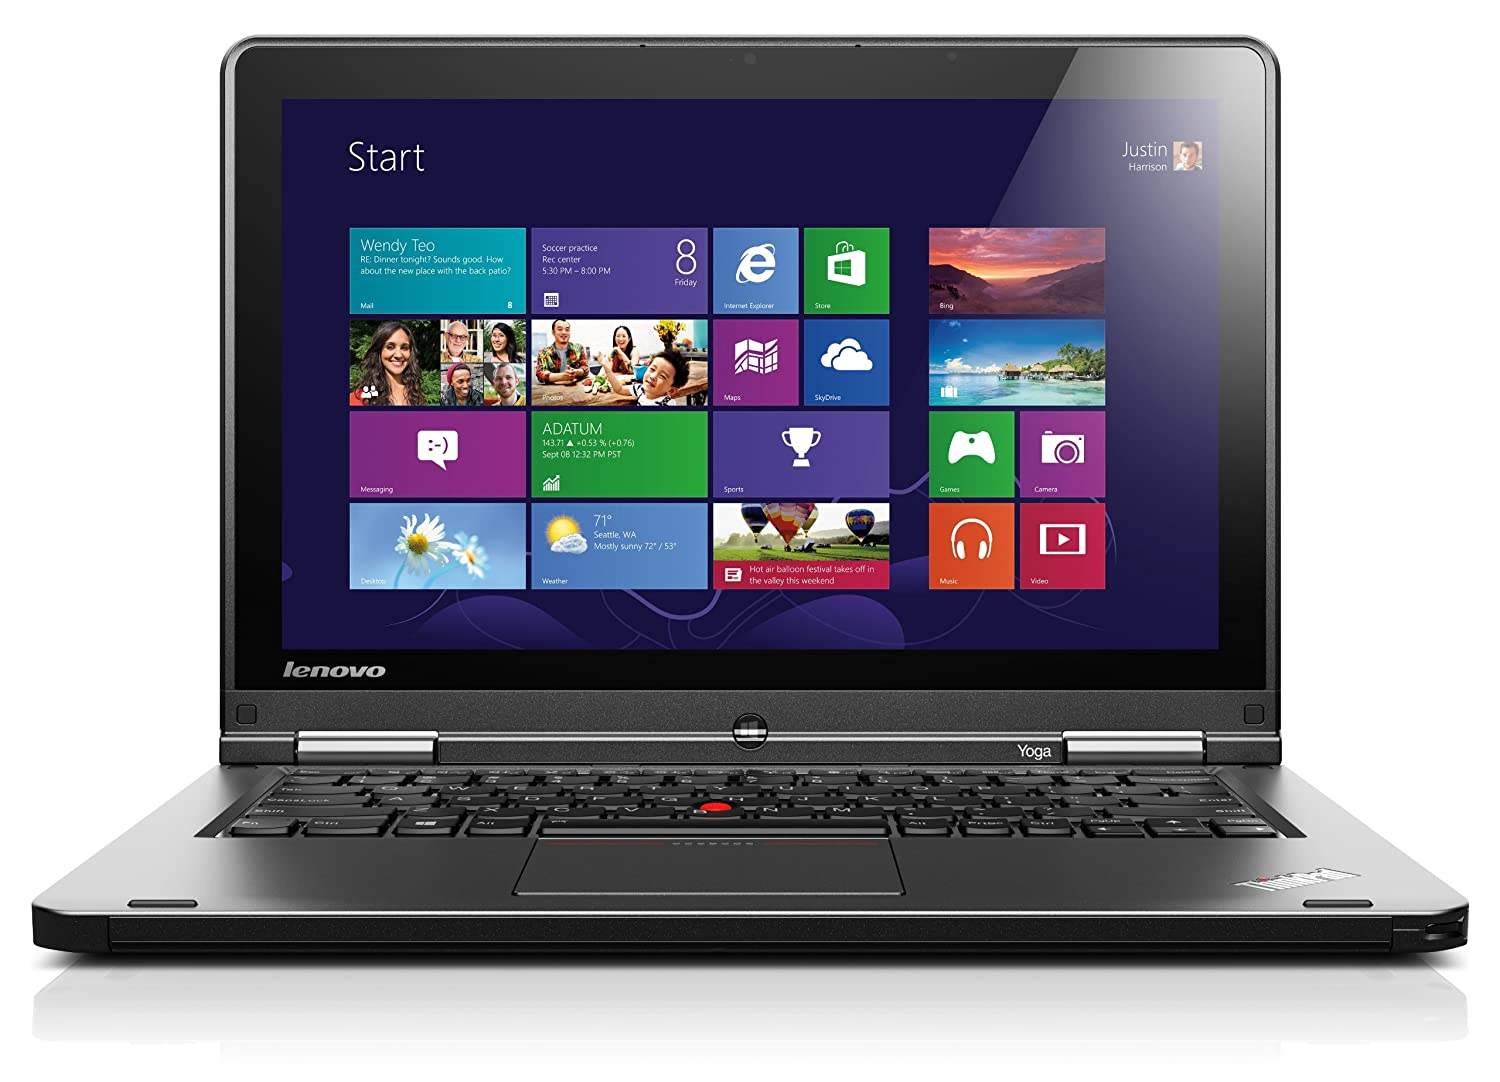 Lenovo reveals new business laptops with hot swap battery feature - Amazon Com Lenovo Thinkpad Yoga 12 5 Inch Convertible 2 In 1 Touchscreen Ultrabook 20cd0032us Computers Accessories